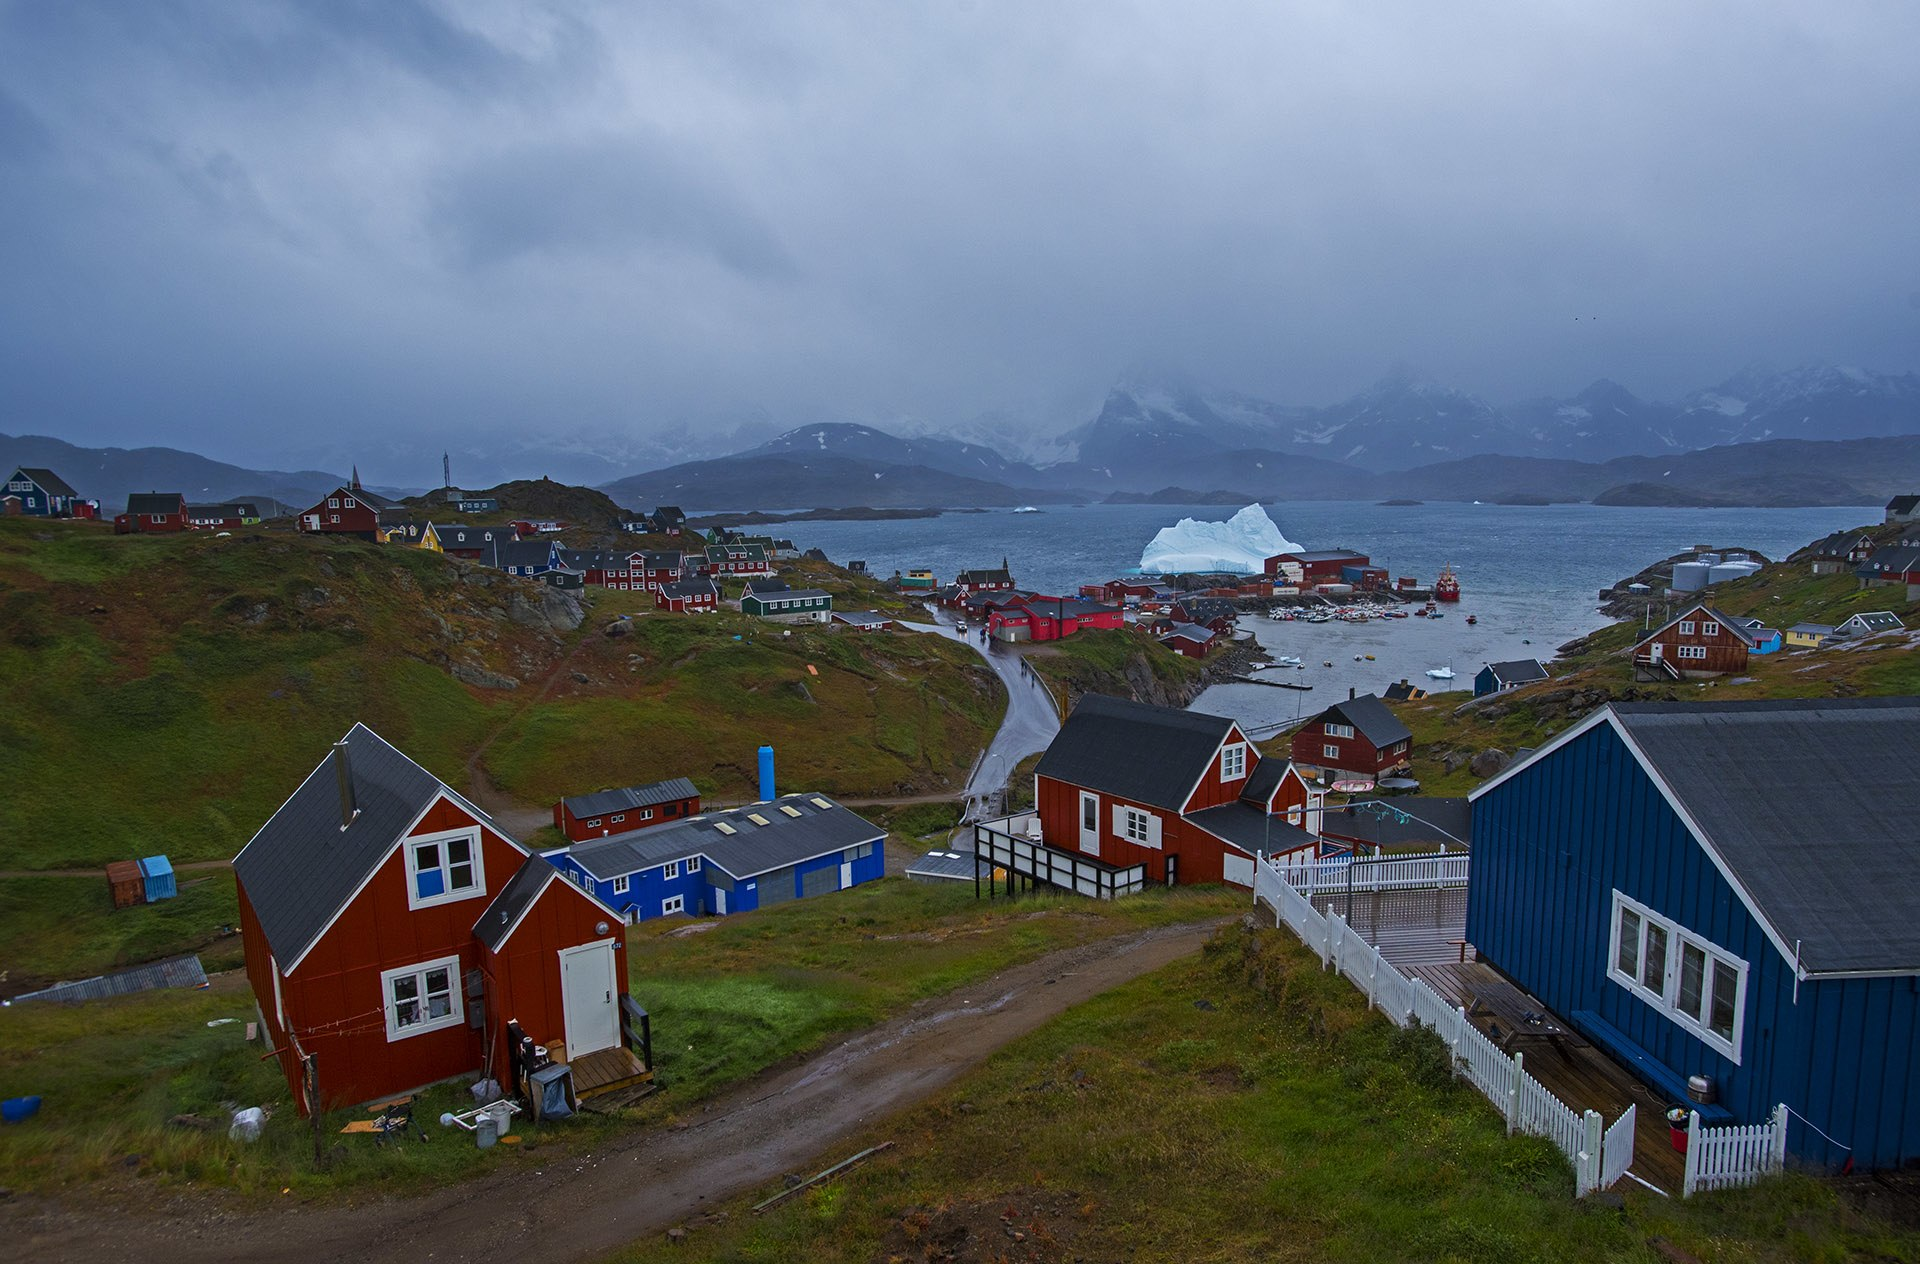 It is not uncommon for the residents of Tasiilaq to walk past icebergs on their daily walk to work. The town is dotted with blue and red homes and gardens where vegetables are grown in the summer months.